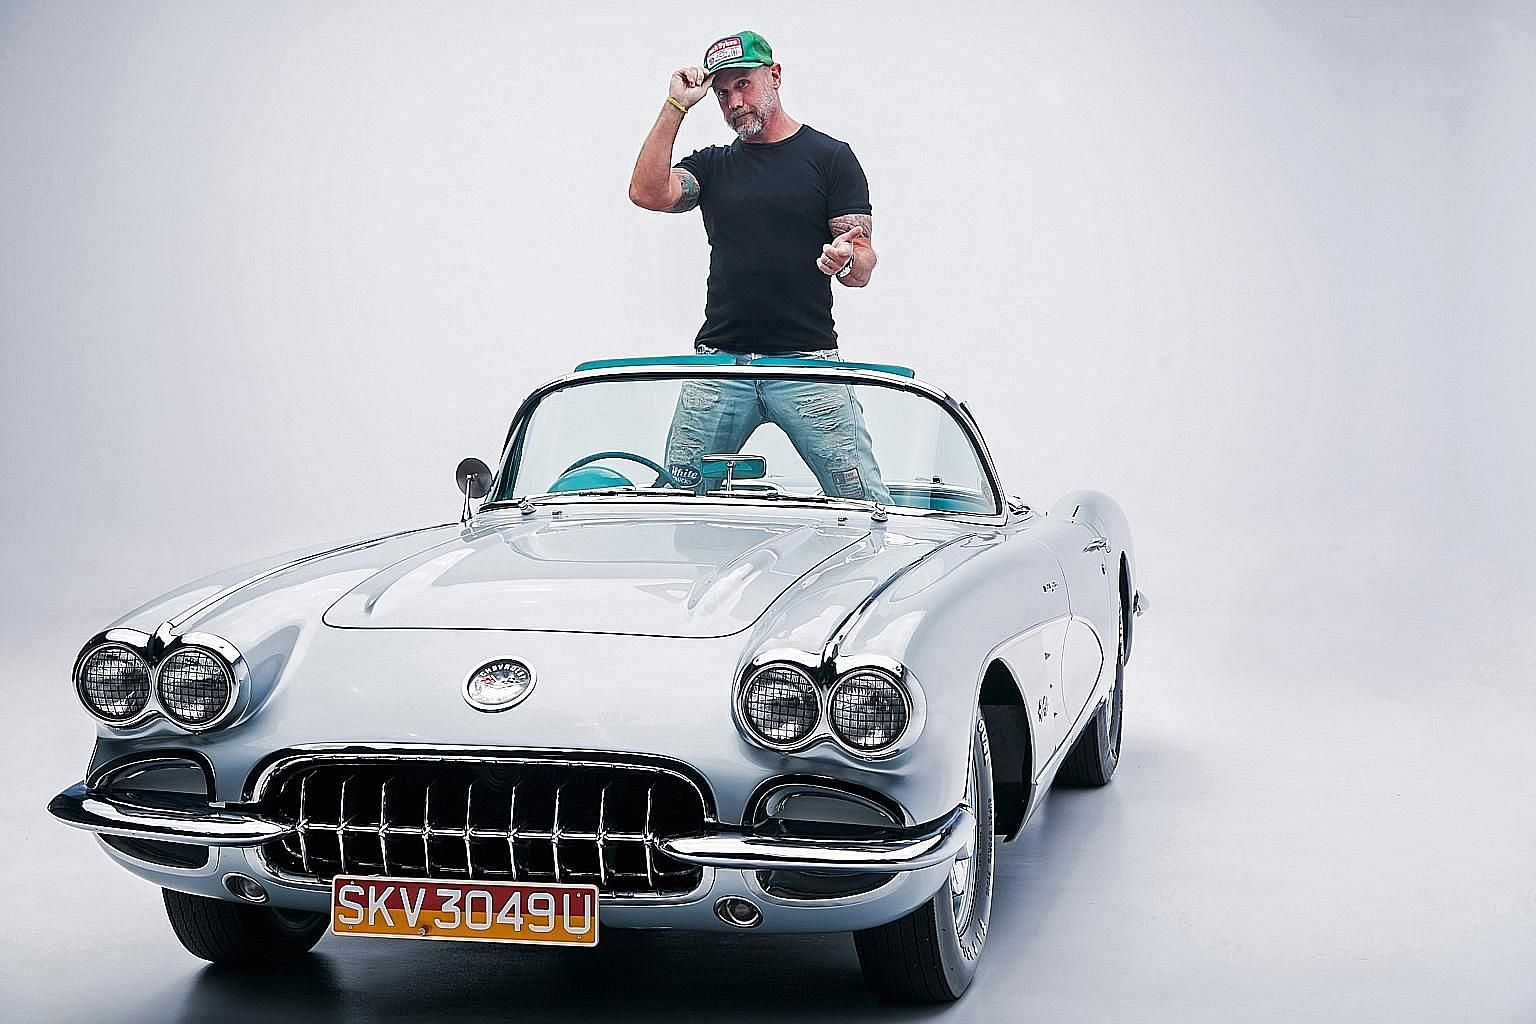 Mr Kevin White converted the Chevrolet Corvette C1 to a right-hand-drive in Cleveland, Ohio, in 2012, and had it imported to and registered in Singapore in 2015.